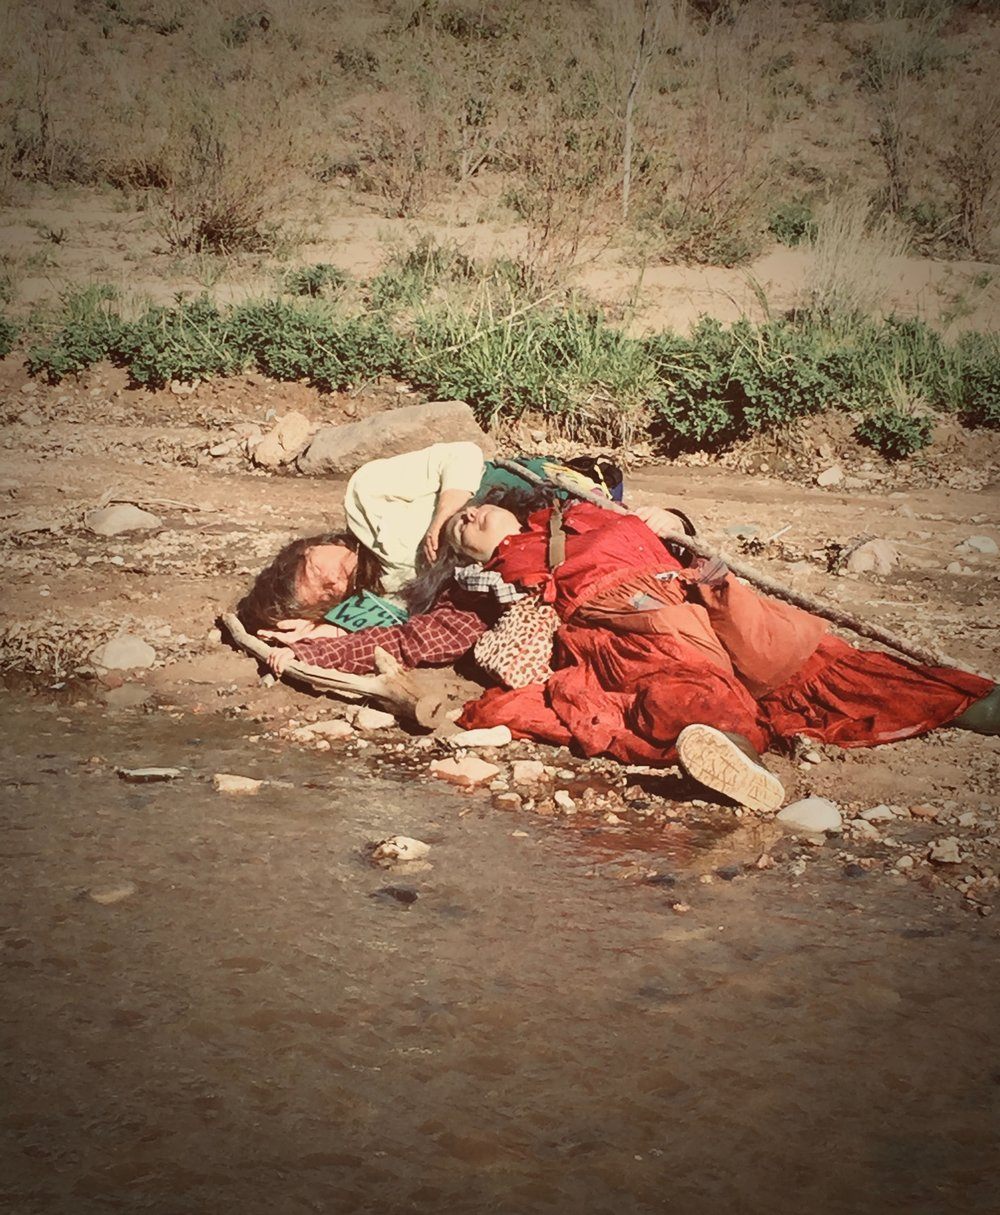 Two Crones Resting from  The Crone River Walk,  a Rite of Passage ritual performance in the Santa Fe River 2013. Photo by Danielle Louise Reddick. Performers Ahjo and  Sage